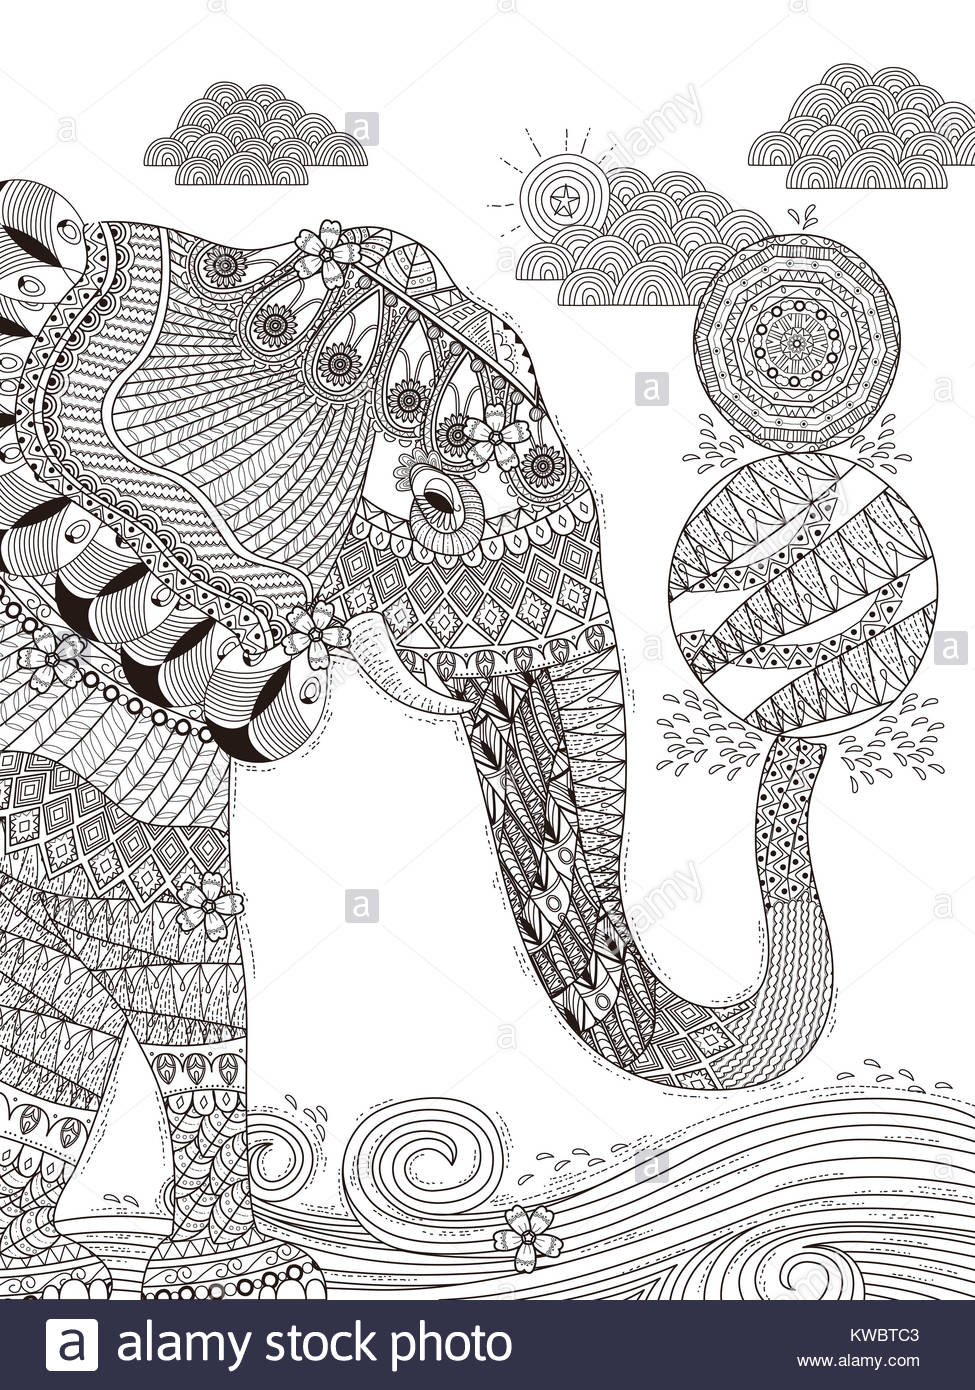 gorgeous adult coloring page - elephant plays balls with its trunk ...